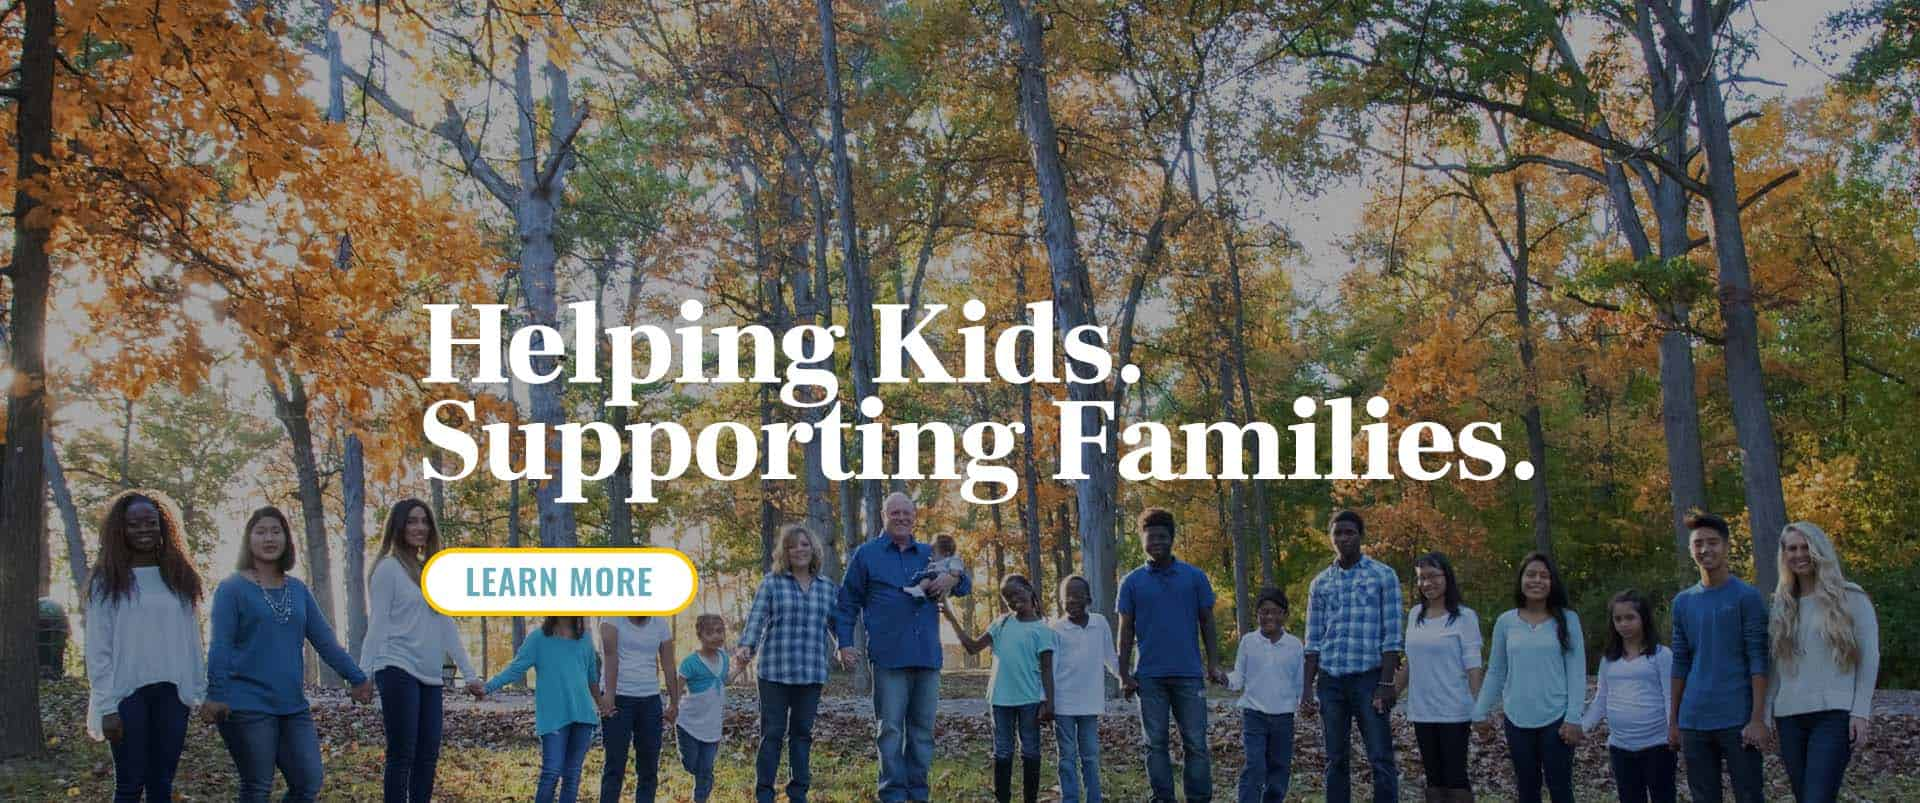 Helping kids and supporting families